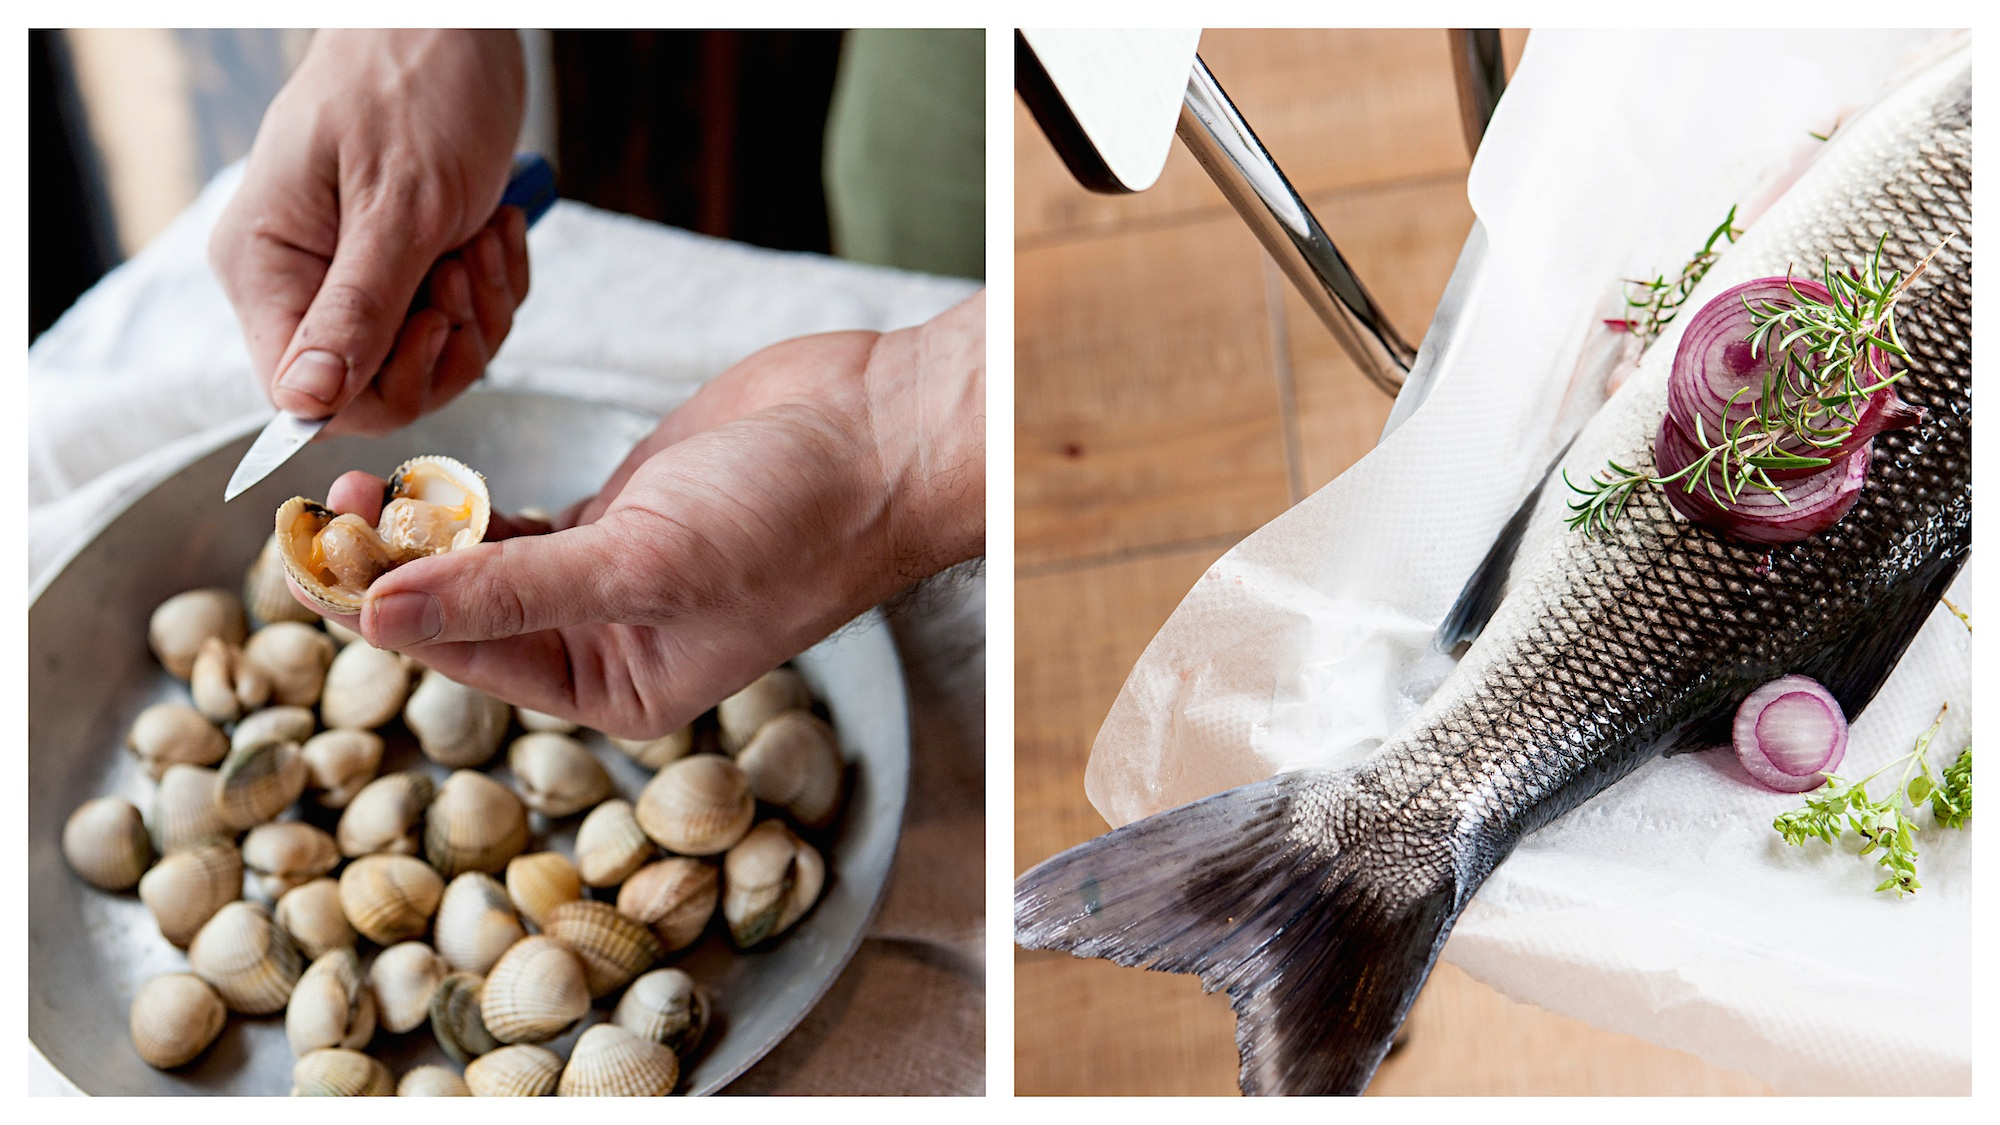 French ethical fish monger's, Poiscaille, sells fresh shellfish (left) and catch of the day (right).